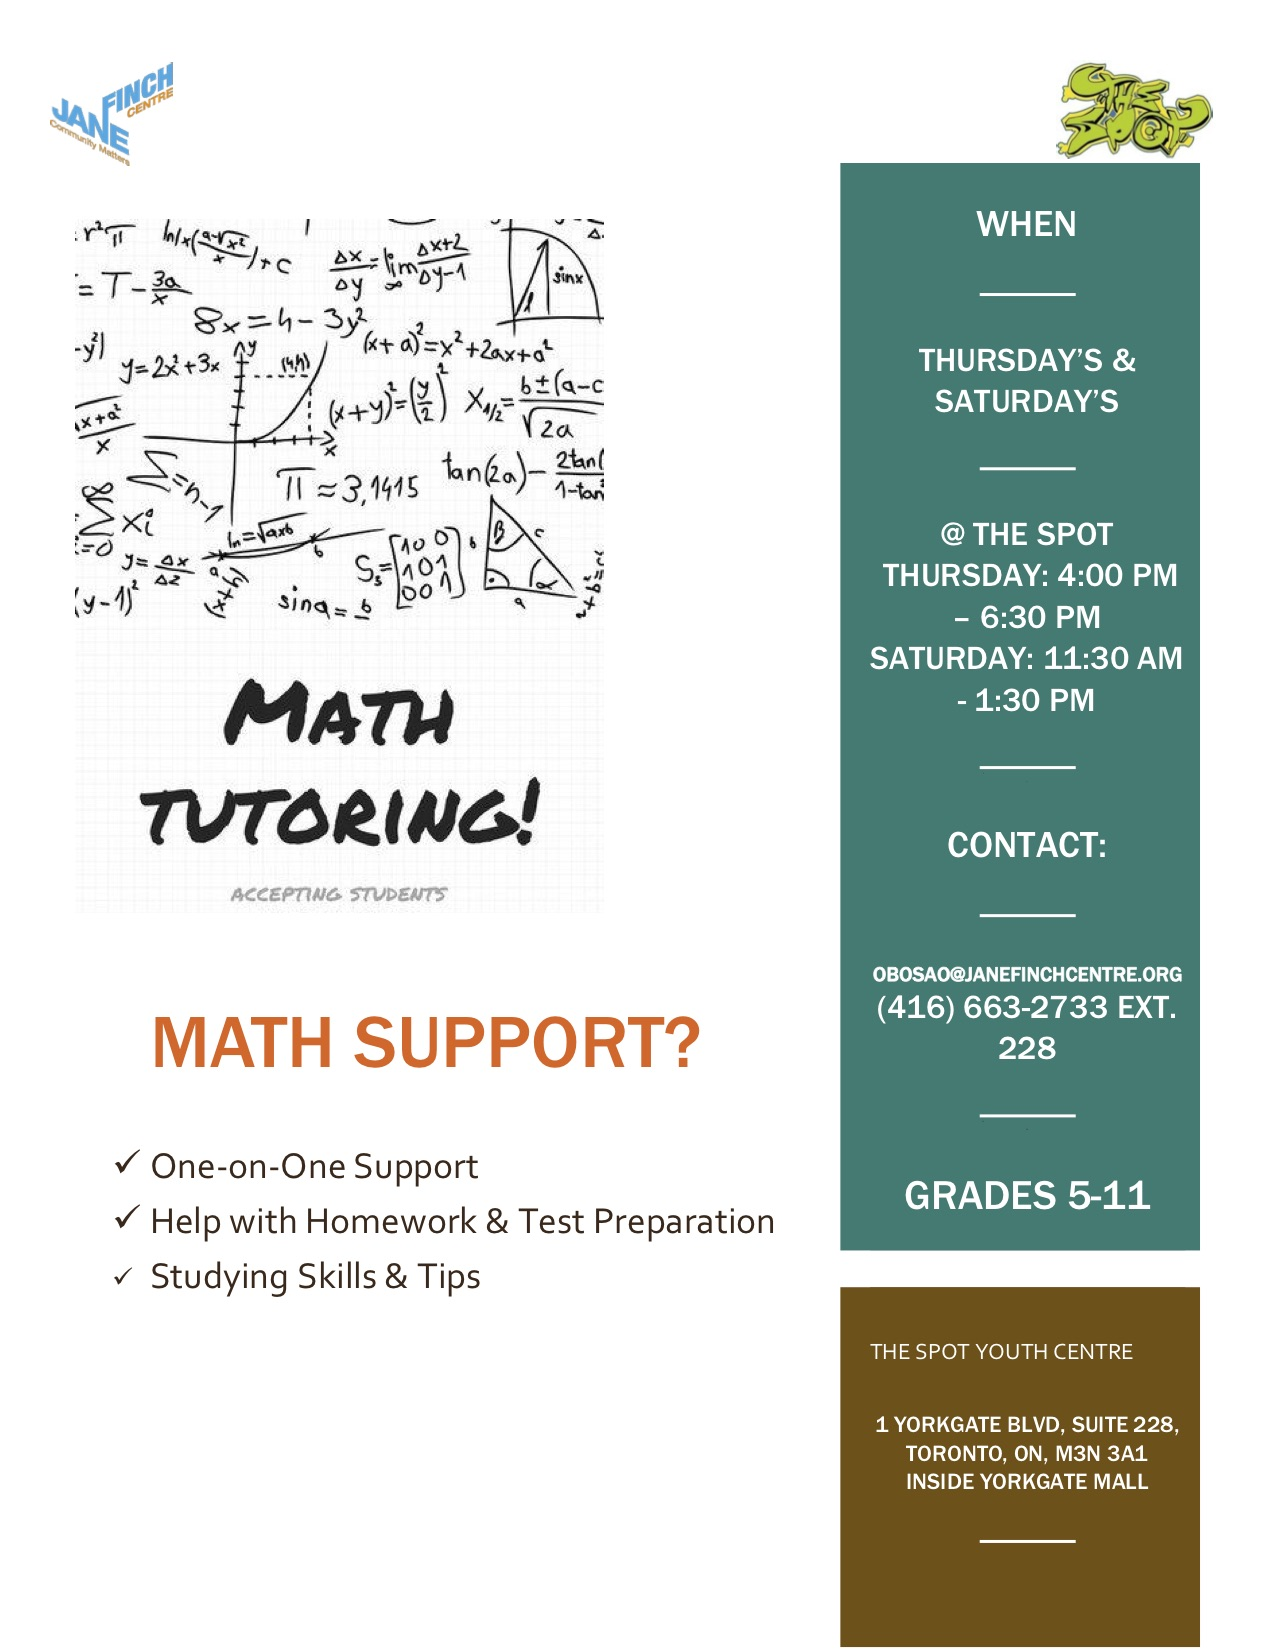 NEED A tutor - Math Support Flyer  copy.jpg